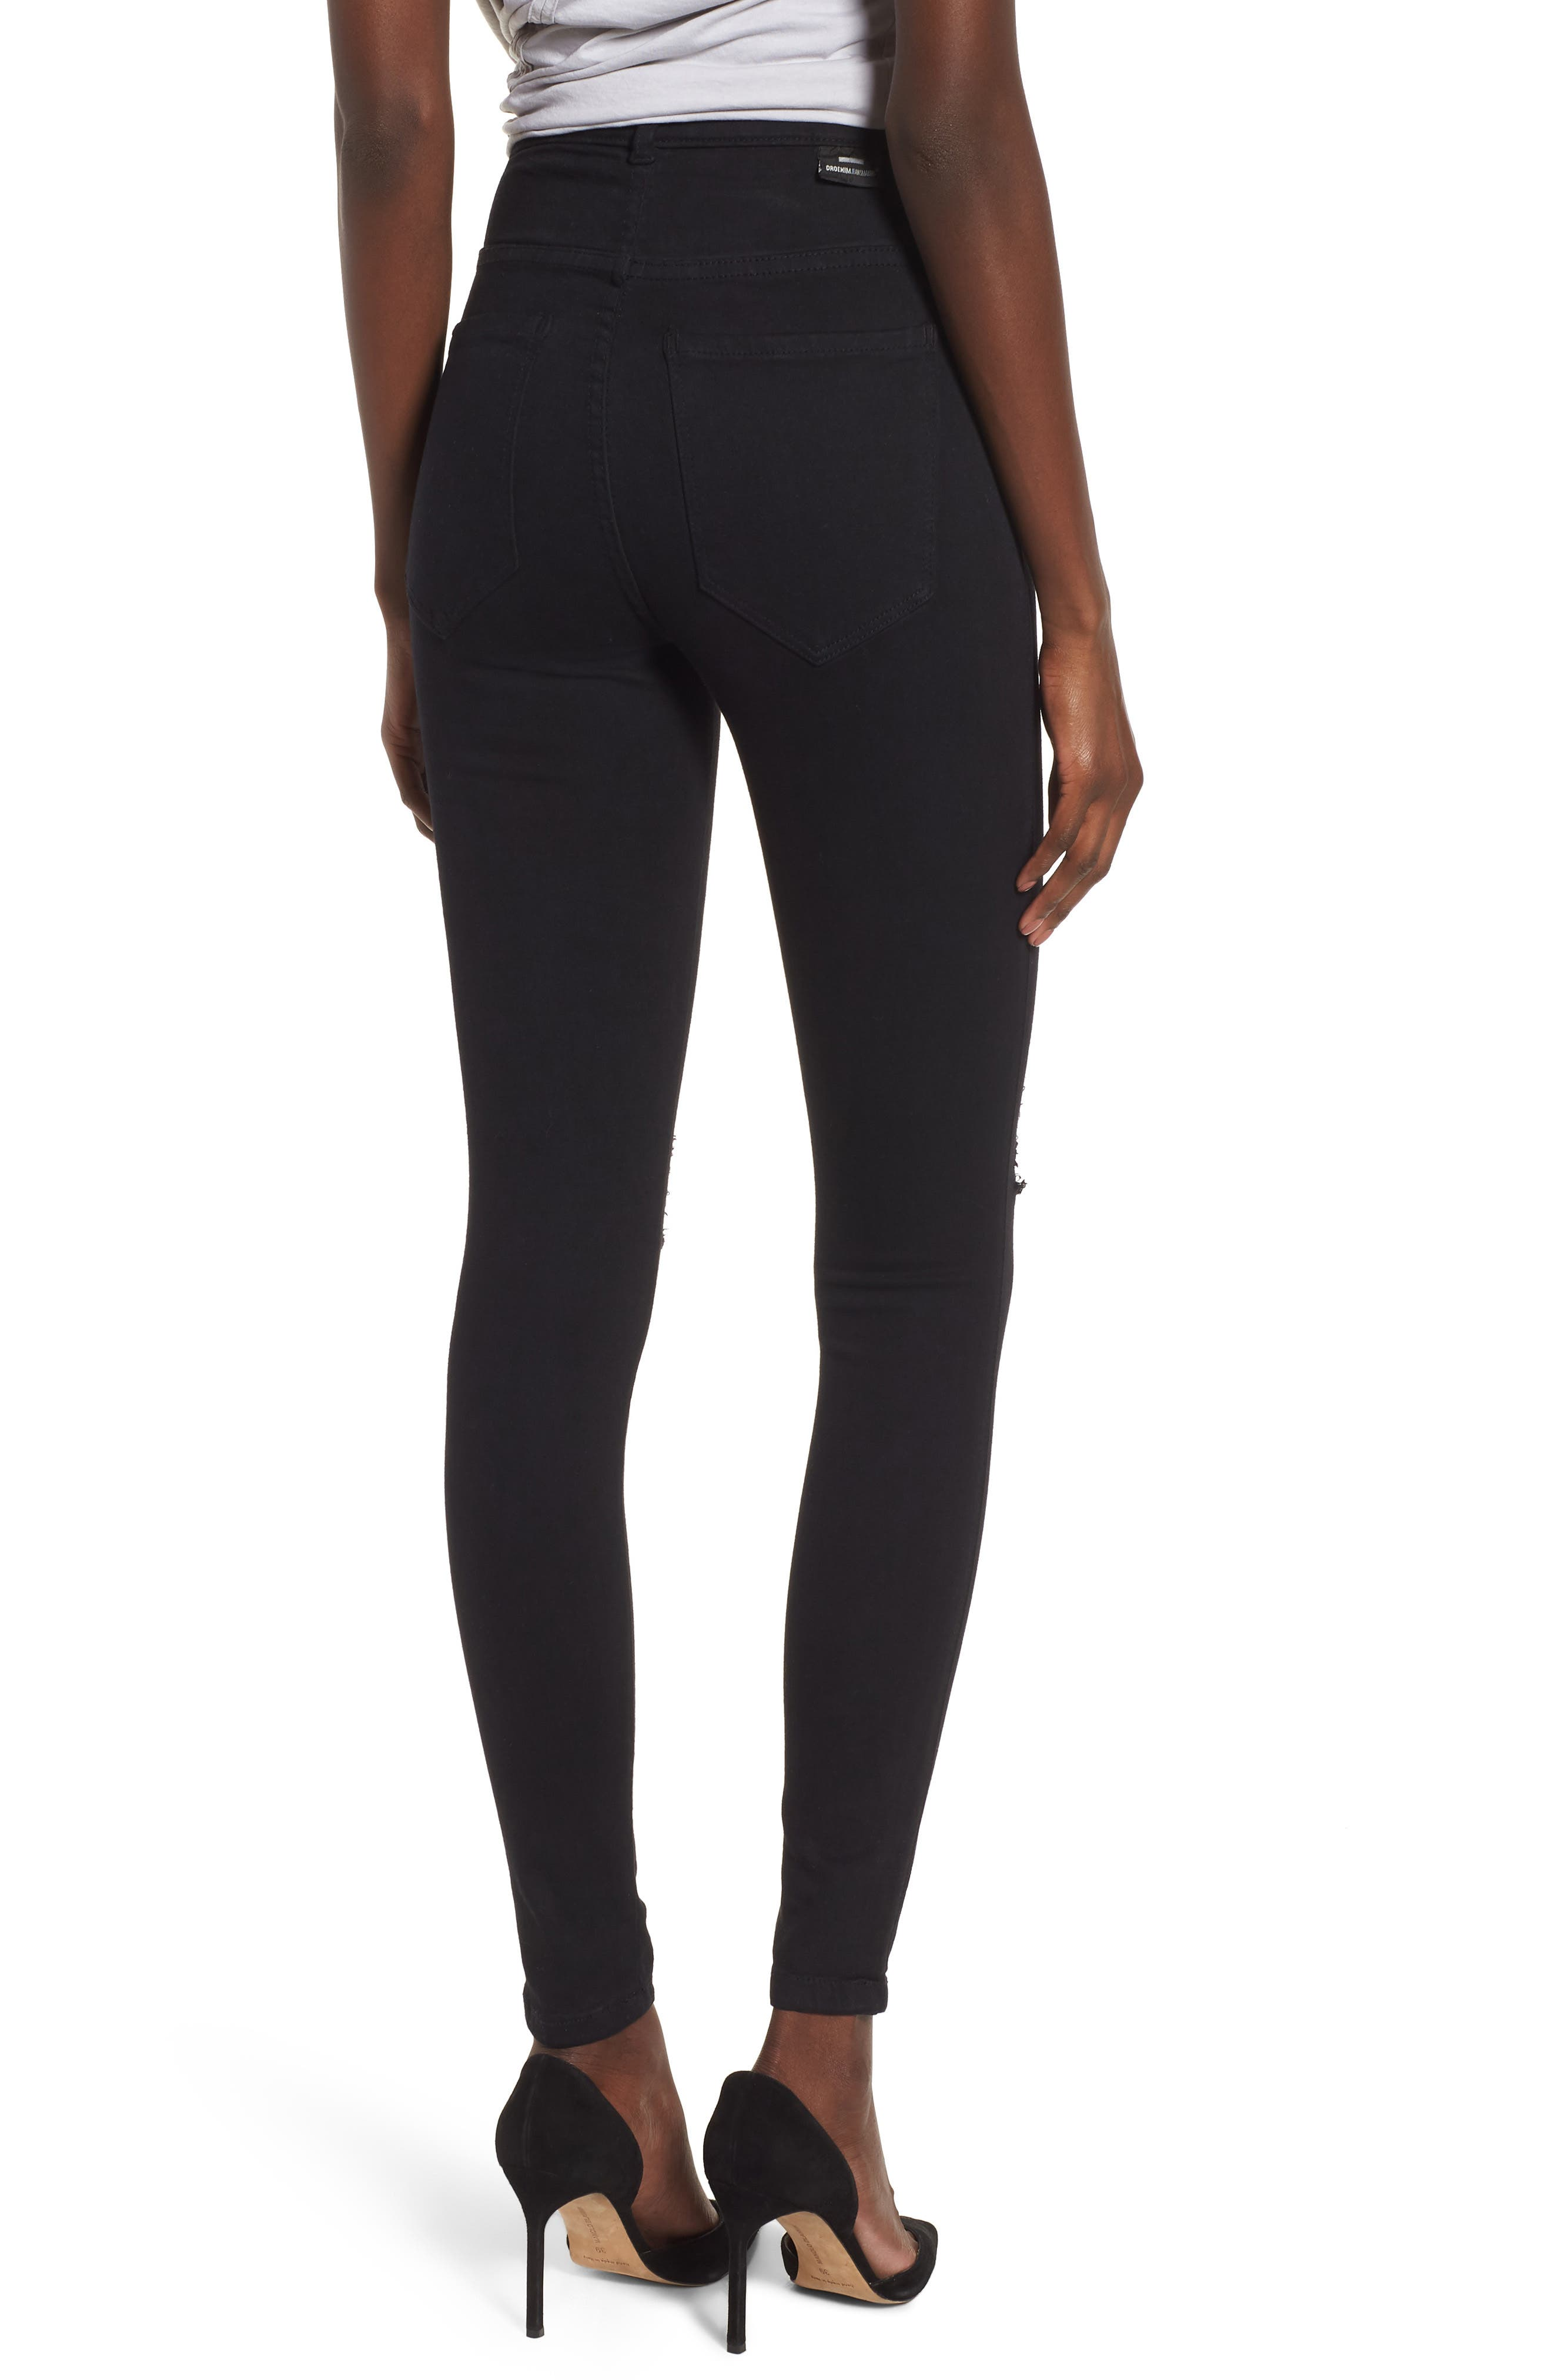 Moxy Ripped Knee Skinny Jeans,                             Alternate thumbnail 2, color,                             003